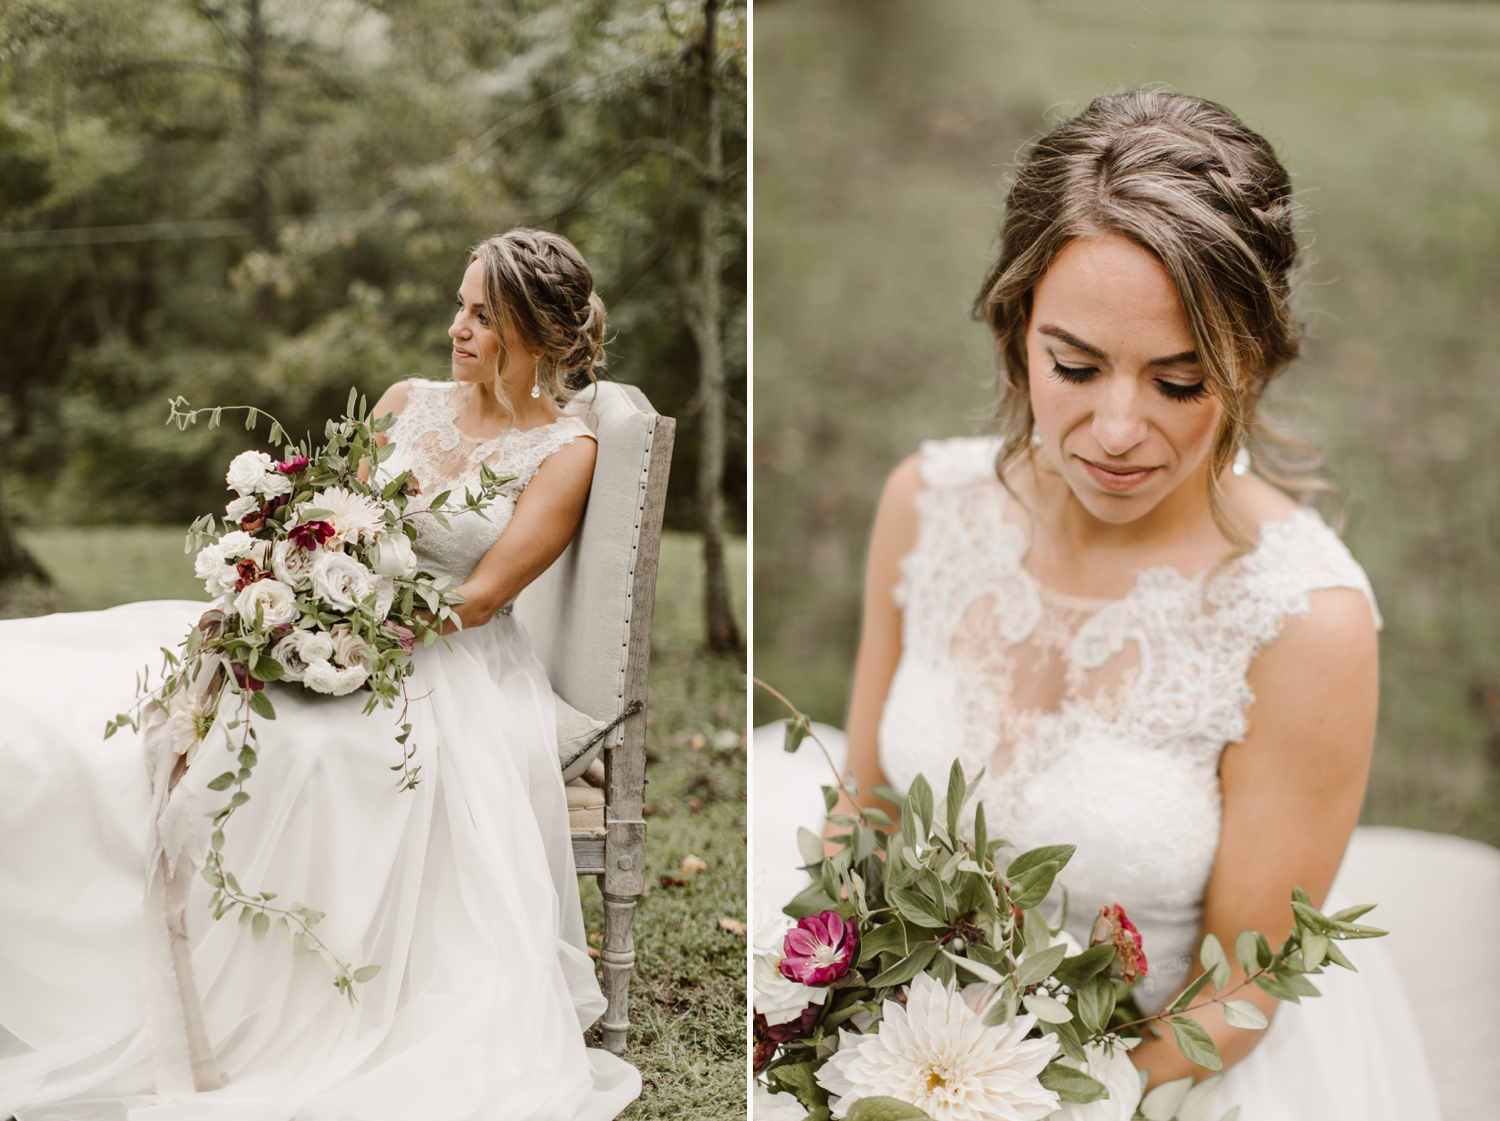 Baltimore wedding photographer outdoor Maryland wedding ceremony   forest earthy Annapolis wedding   outdoors nature bridal portraits